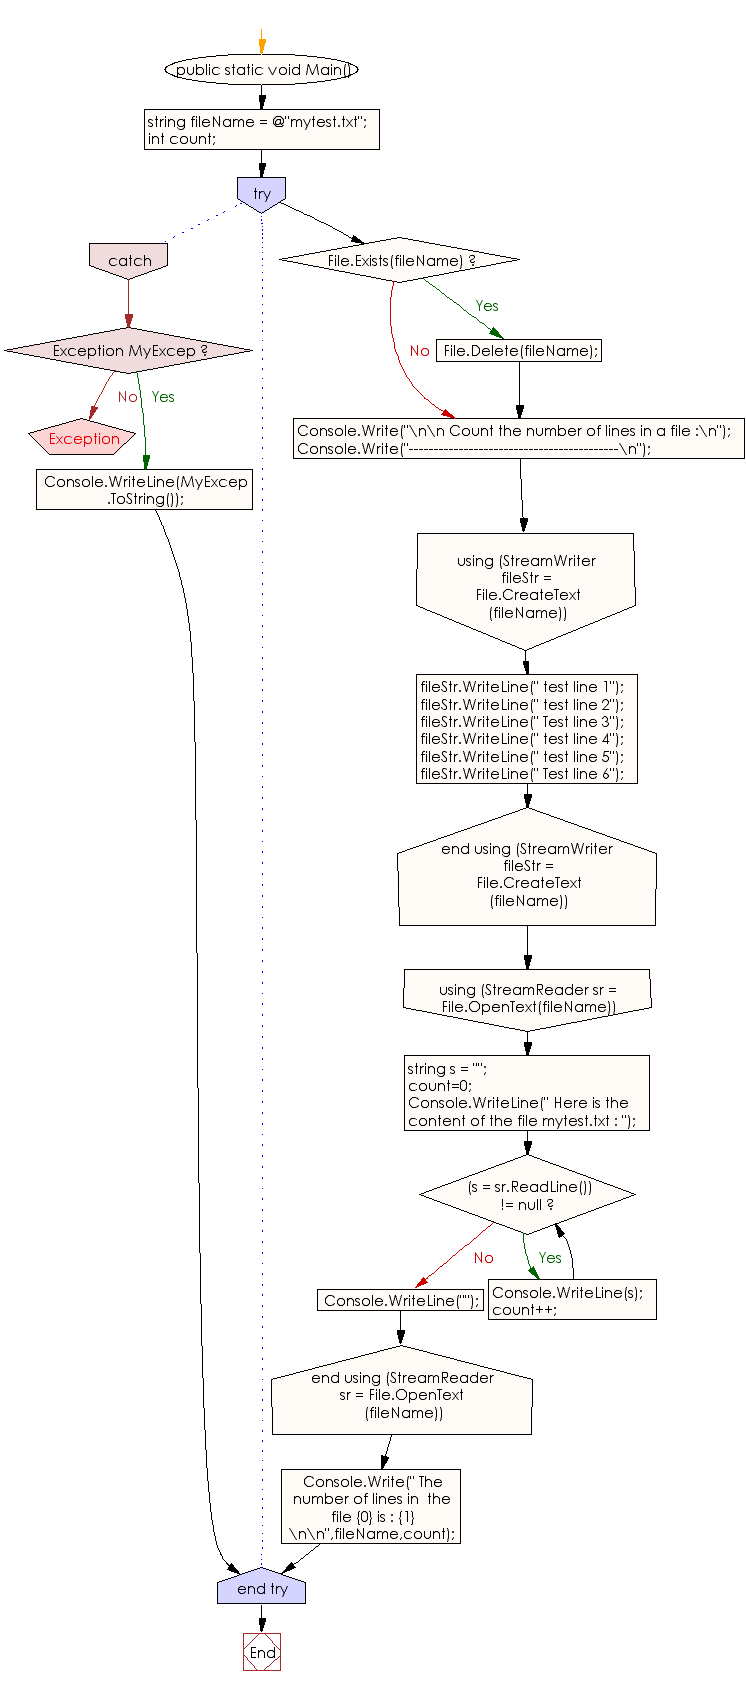 Flowchart: C# Sharp Exercises - Count the number of lines in a file